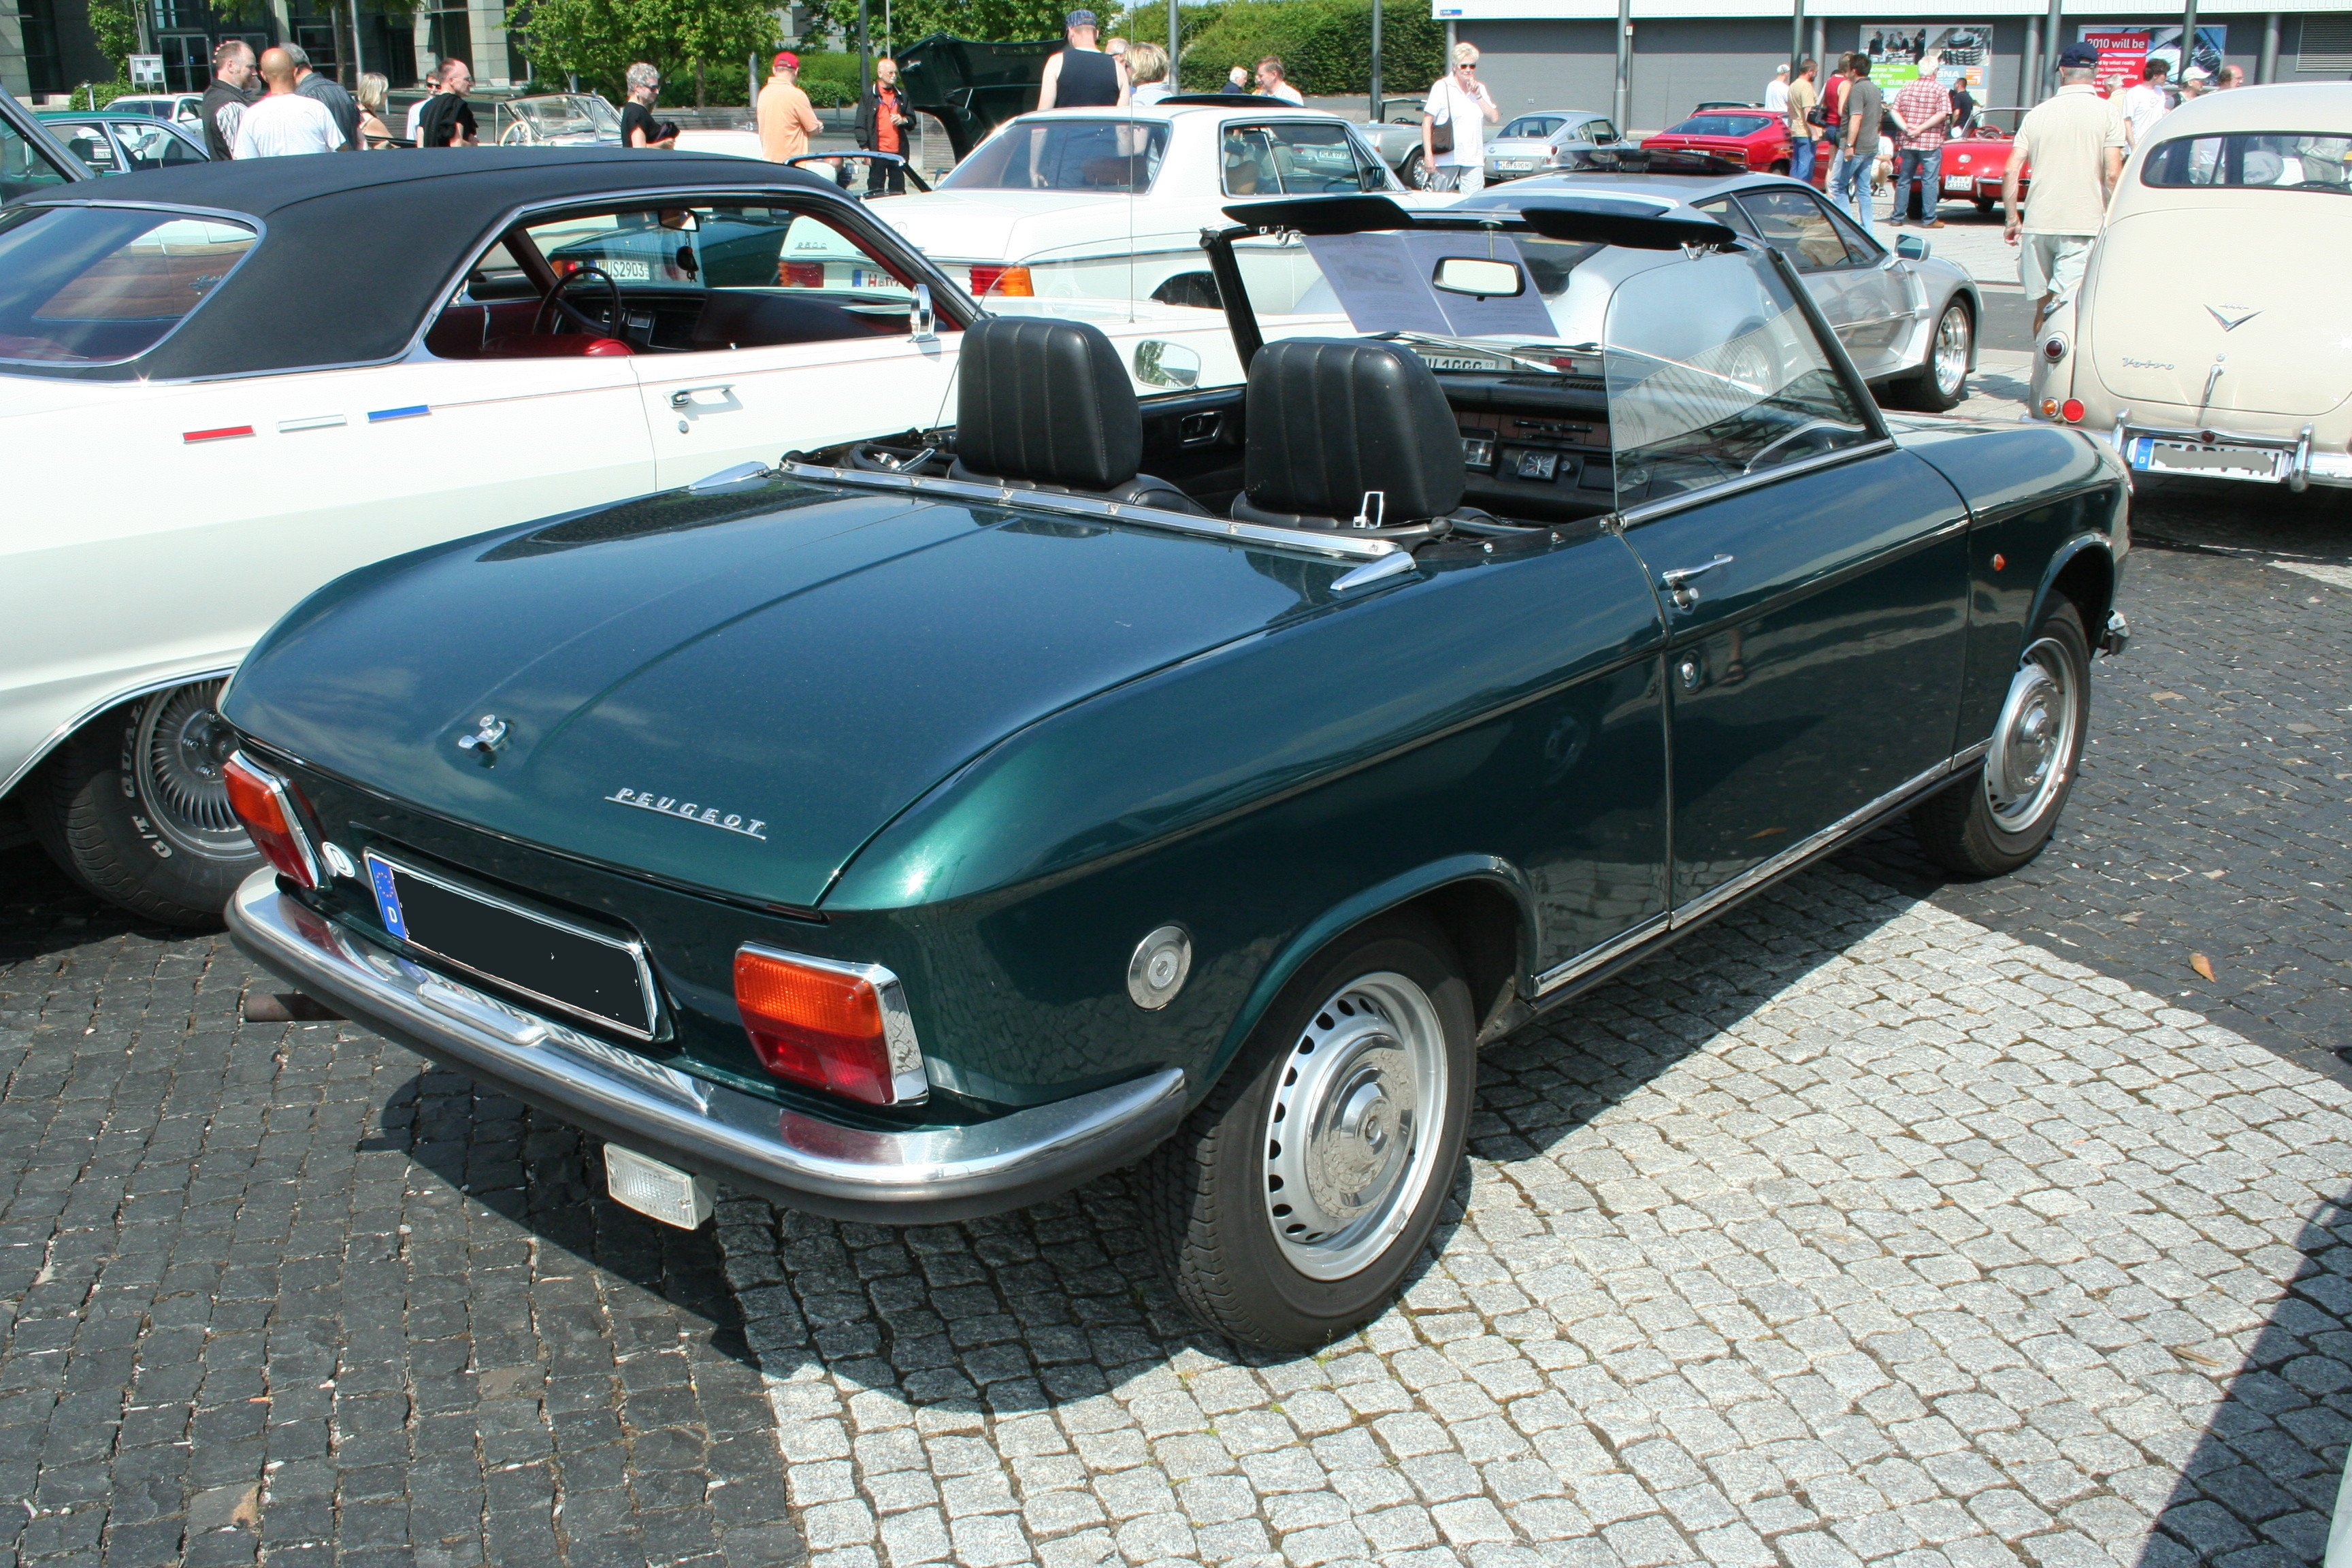 peugeot 304 cars classic french convertible cabriolet wallpaper 3456x2304 597883 wallpaperup. Black Bedroom Furniture Sets. Home Design Ideas